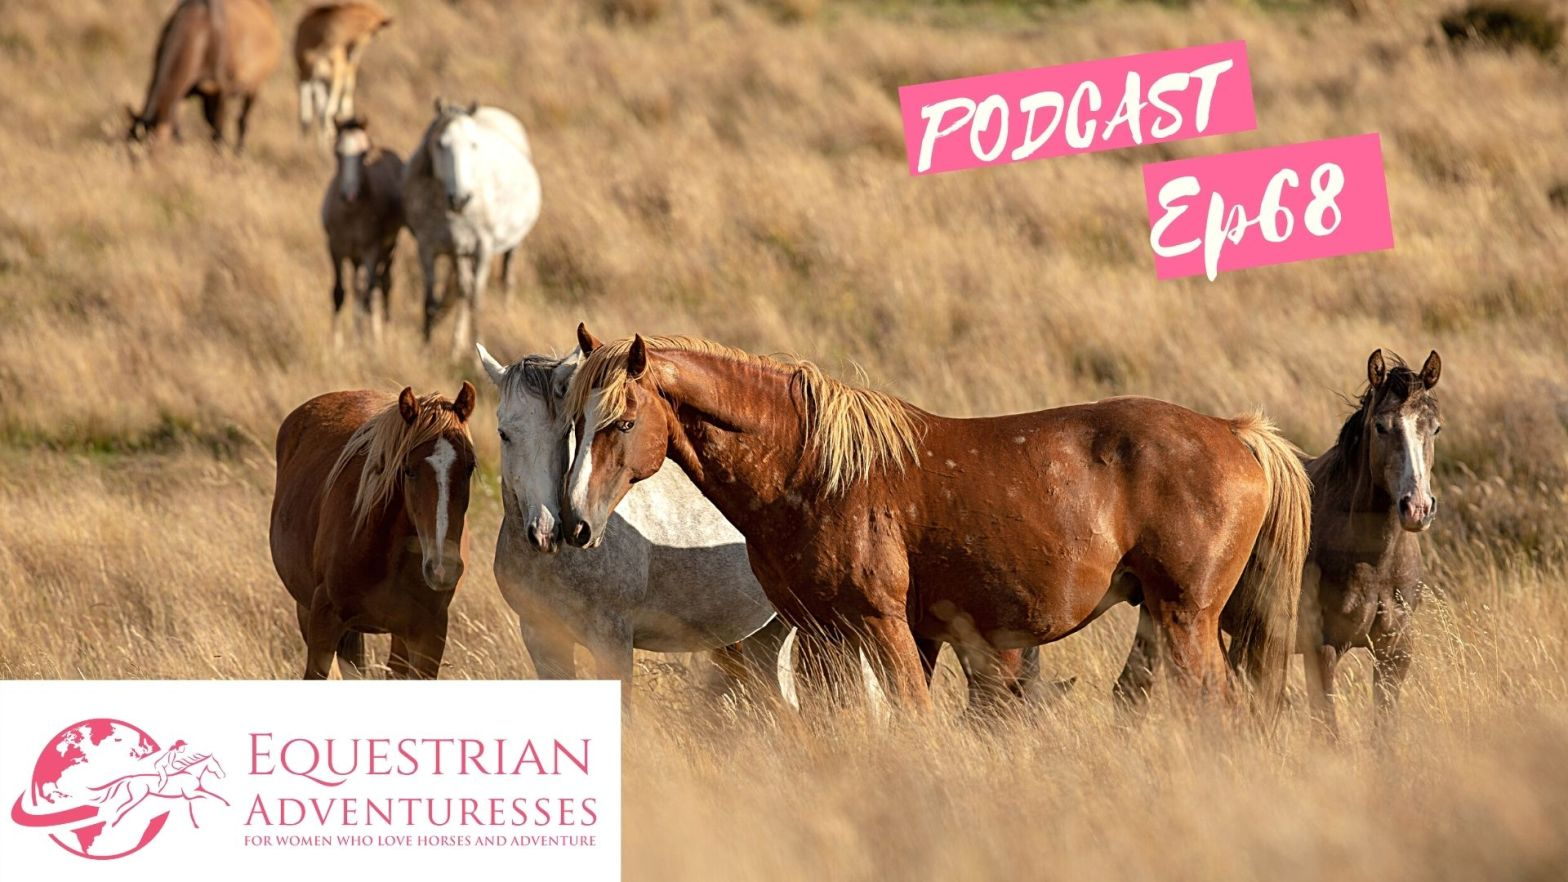 Equestrian Adventuresses Travel and Horse Podcast Ep 68 - Saving the Wild Horses of New Zealand